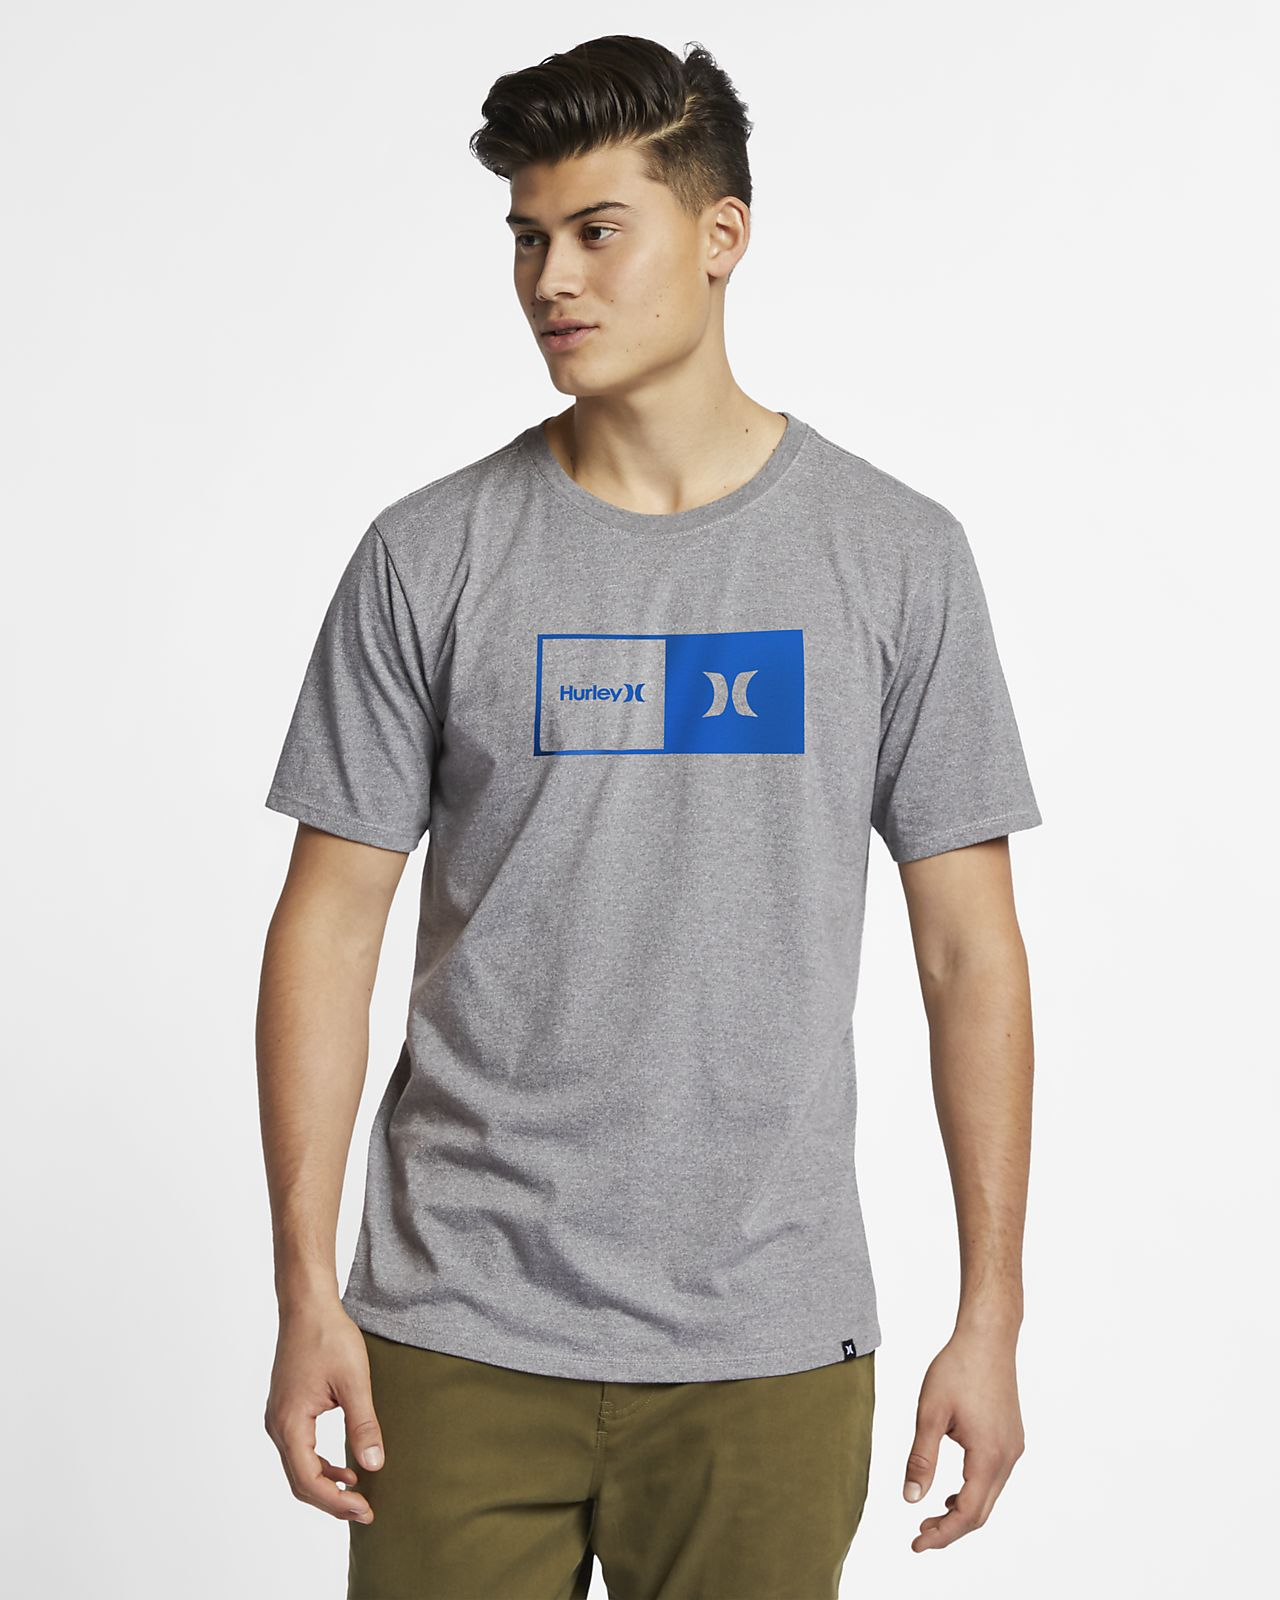 1948eec8377 Hurley Natural Men s T-Shirt. Nike.com GB